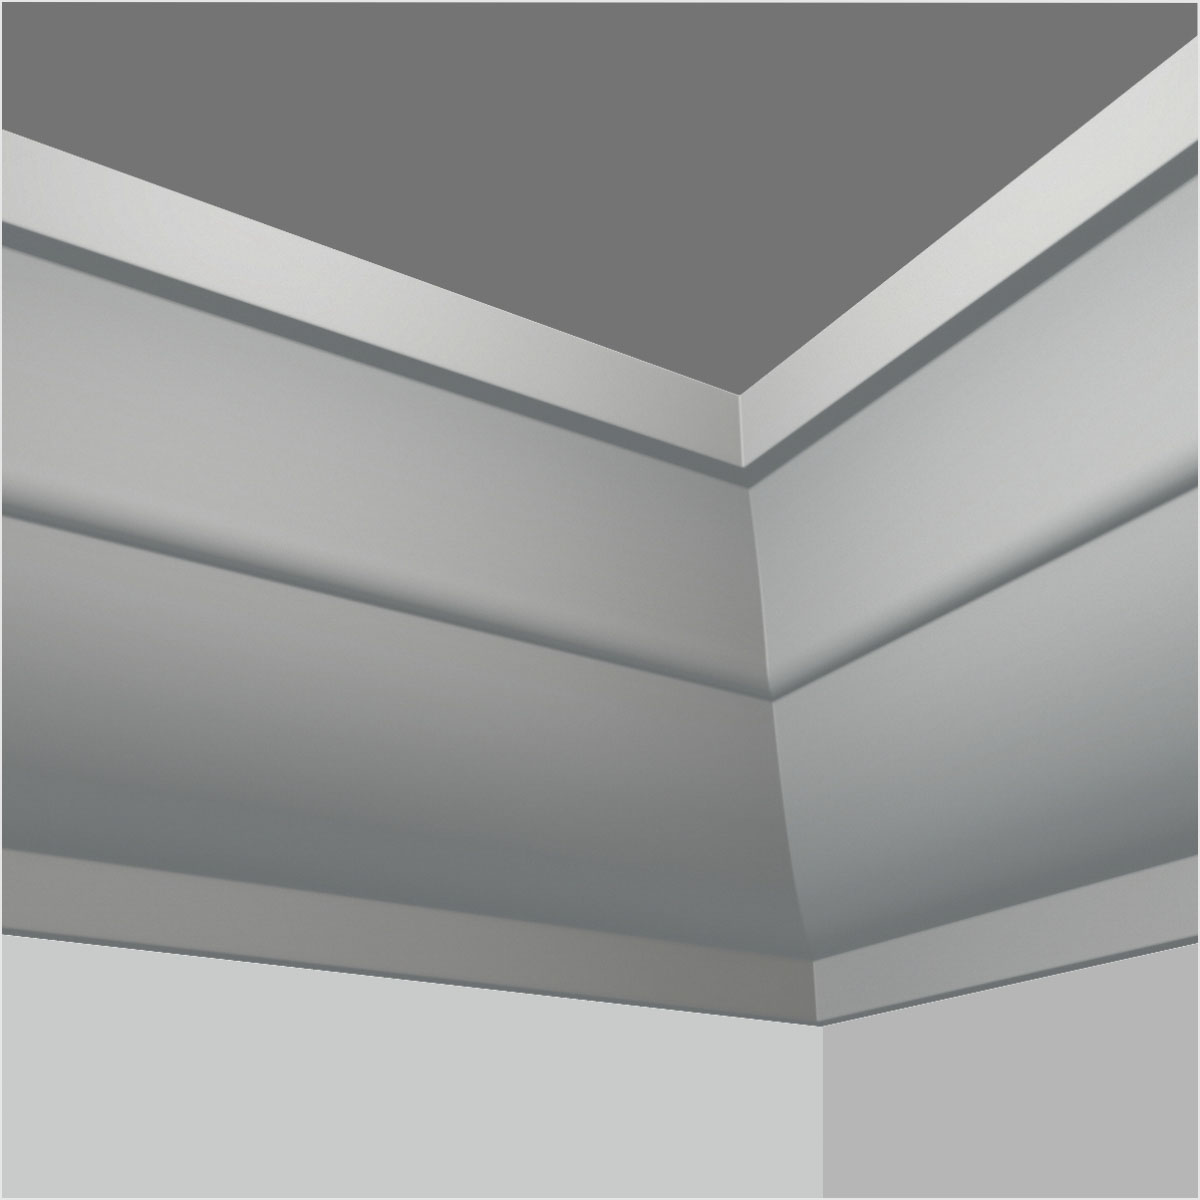 Polyurethane crown molding for high ceilings